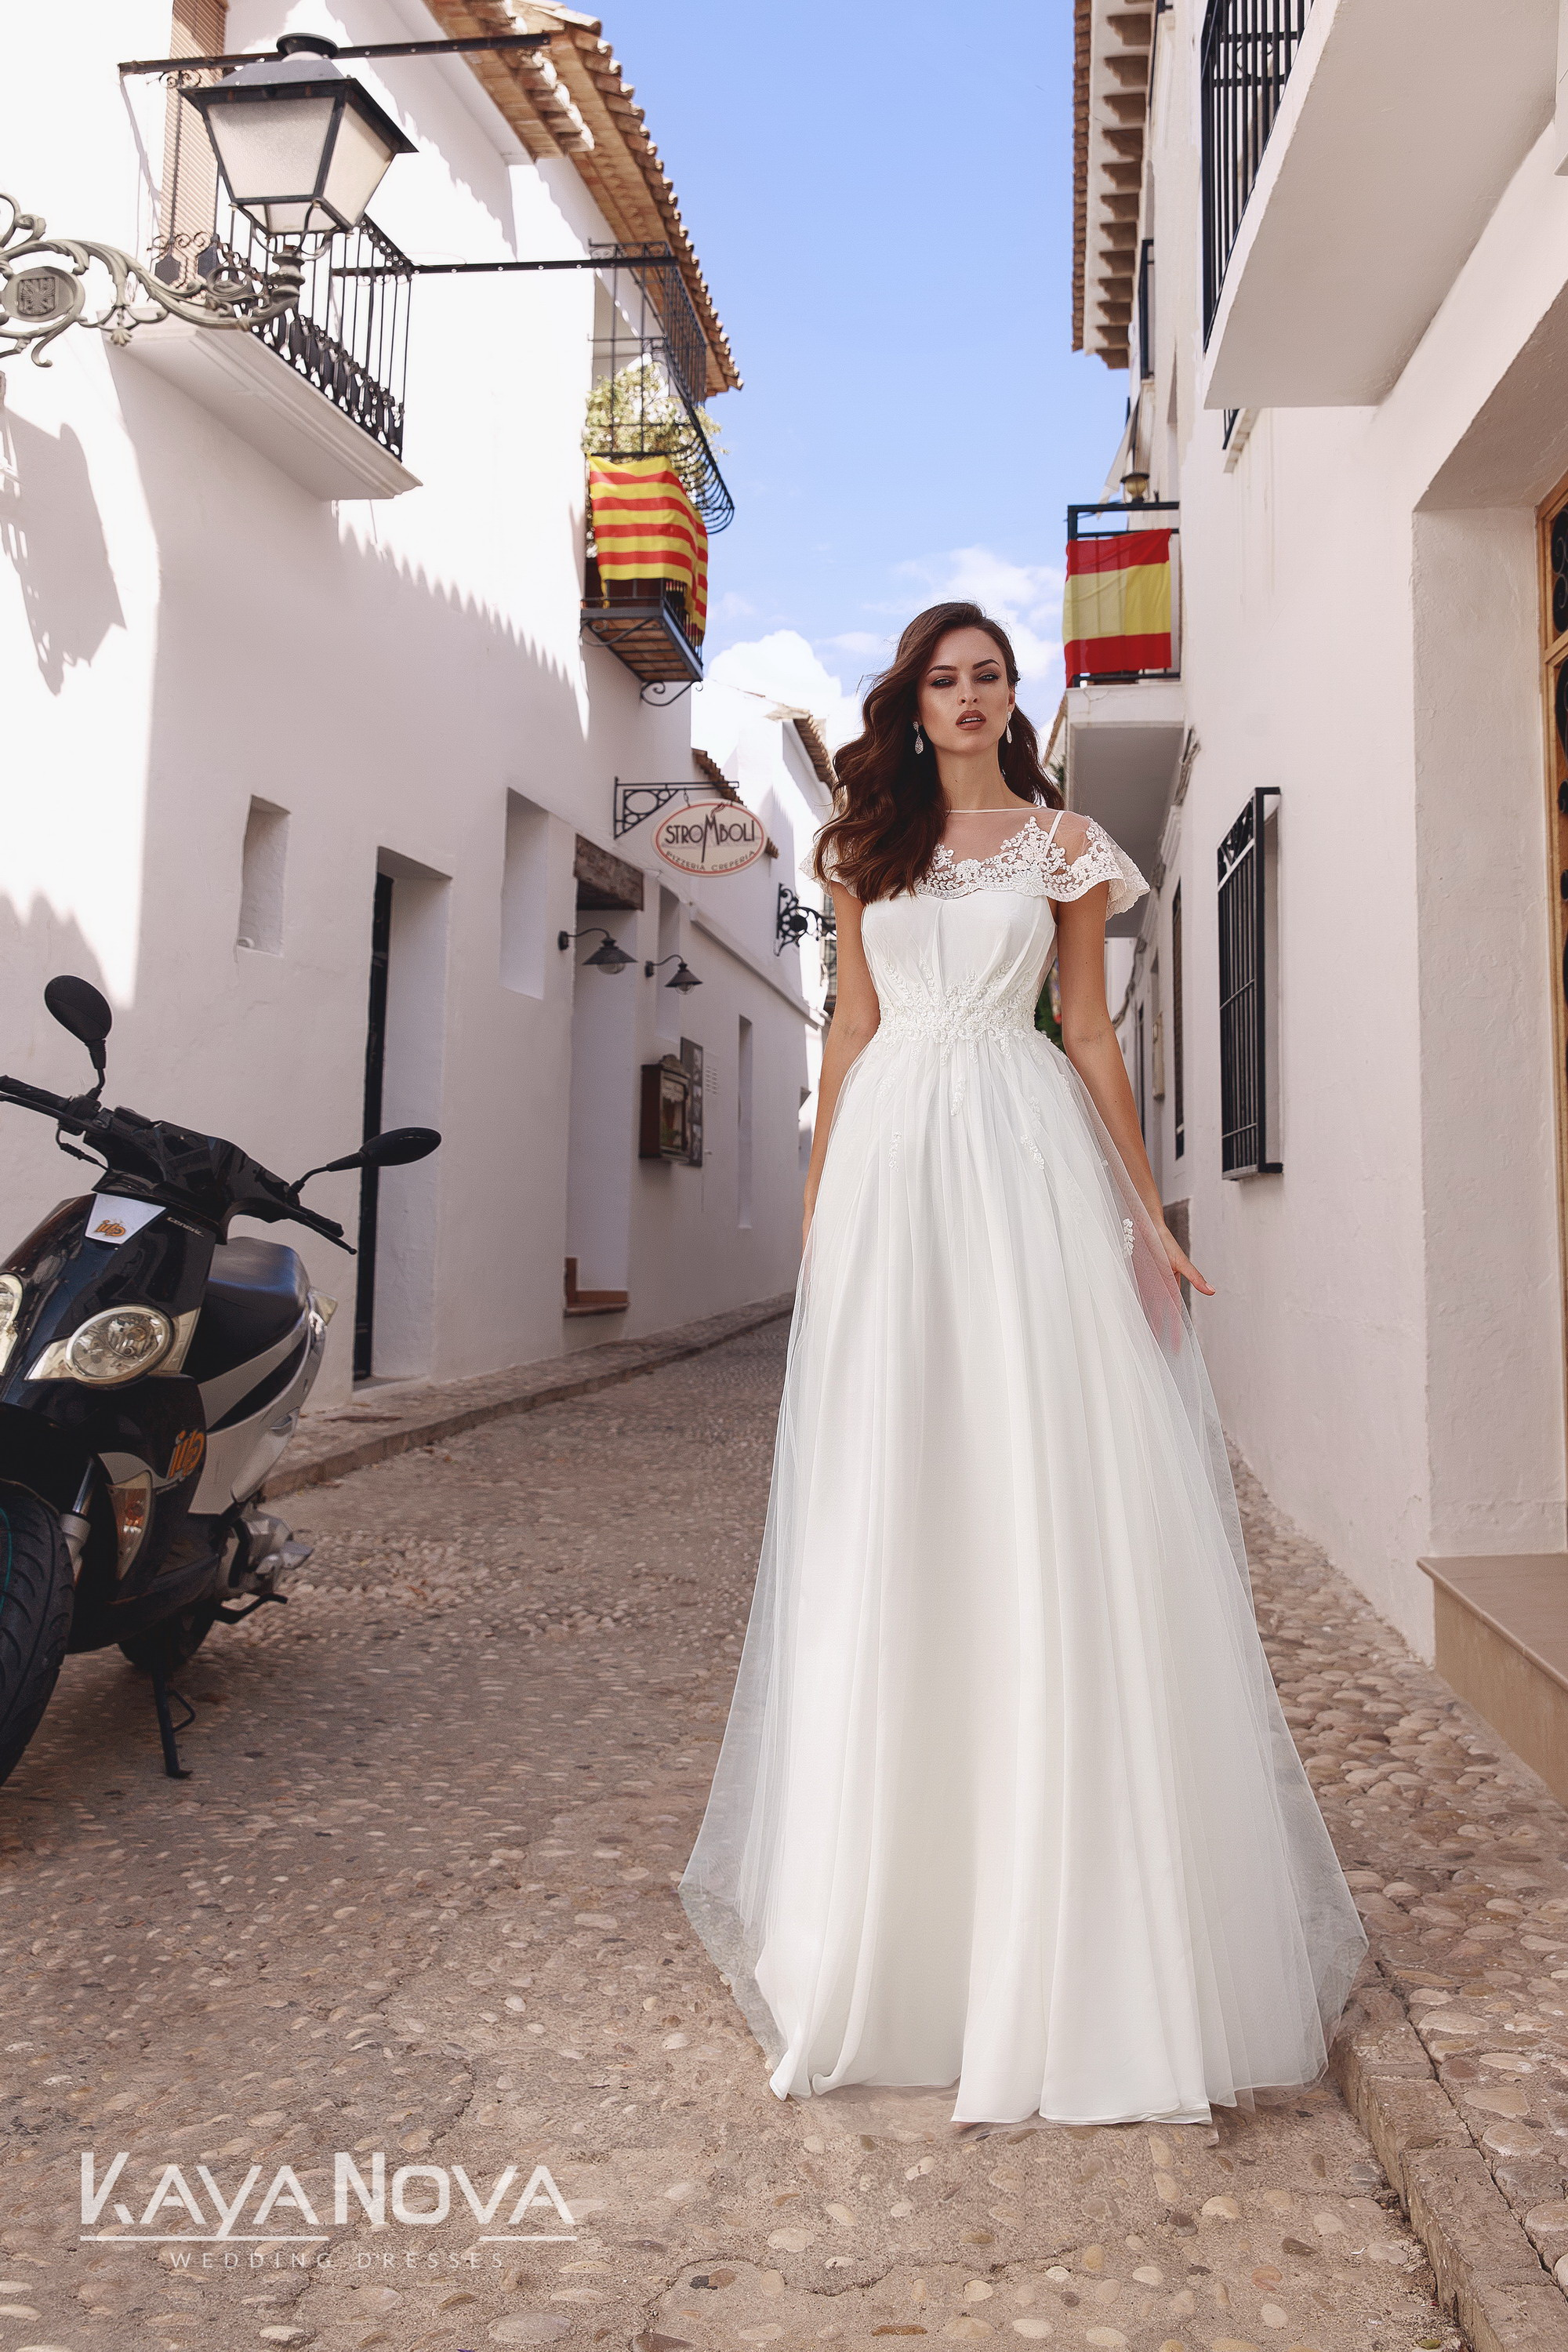 https://kayawedding.com/images/stories/virtuemart/product/Adelain dress 1.jpg